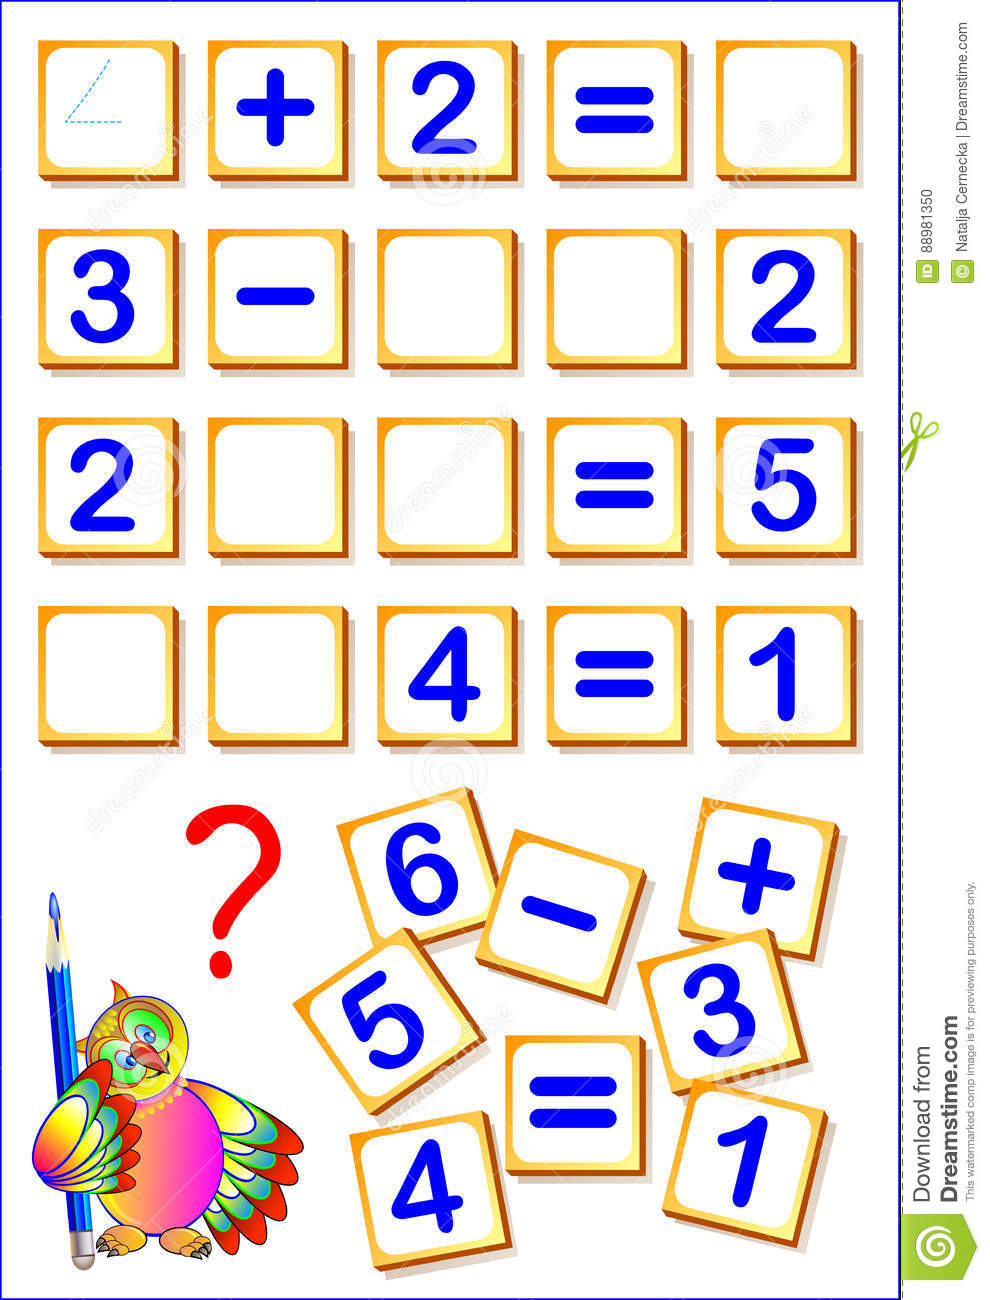 Logical Math Exercises For Kids. Need To Find The Missing Details ...